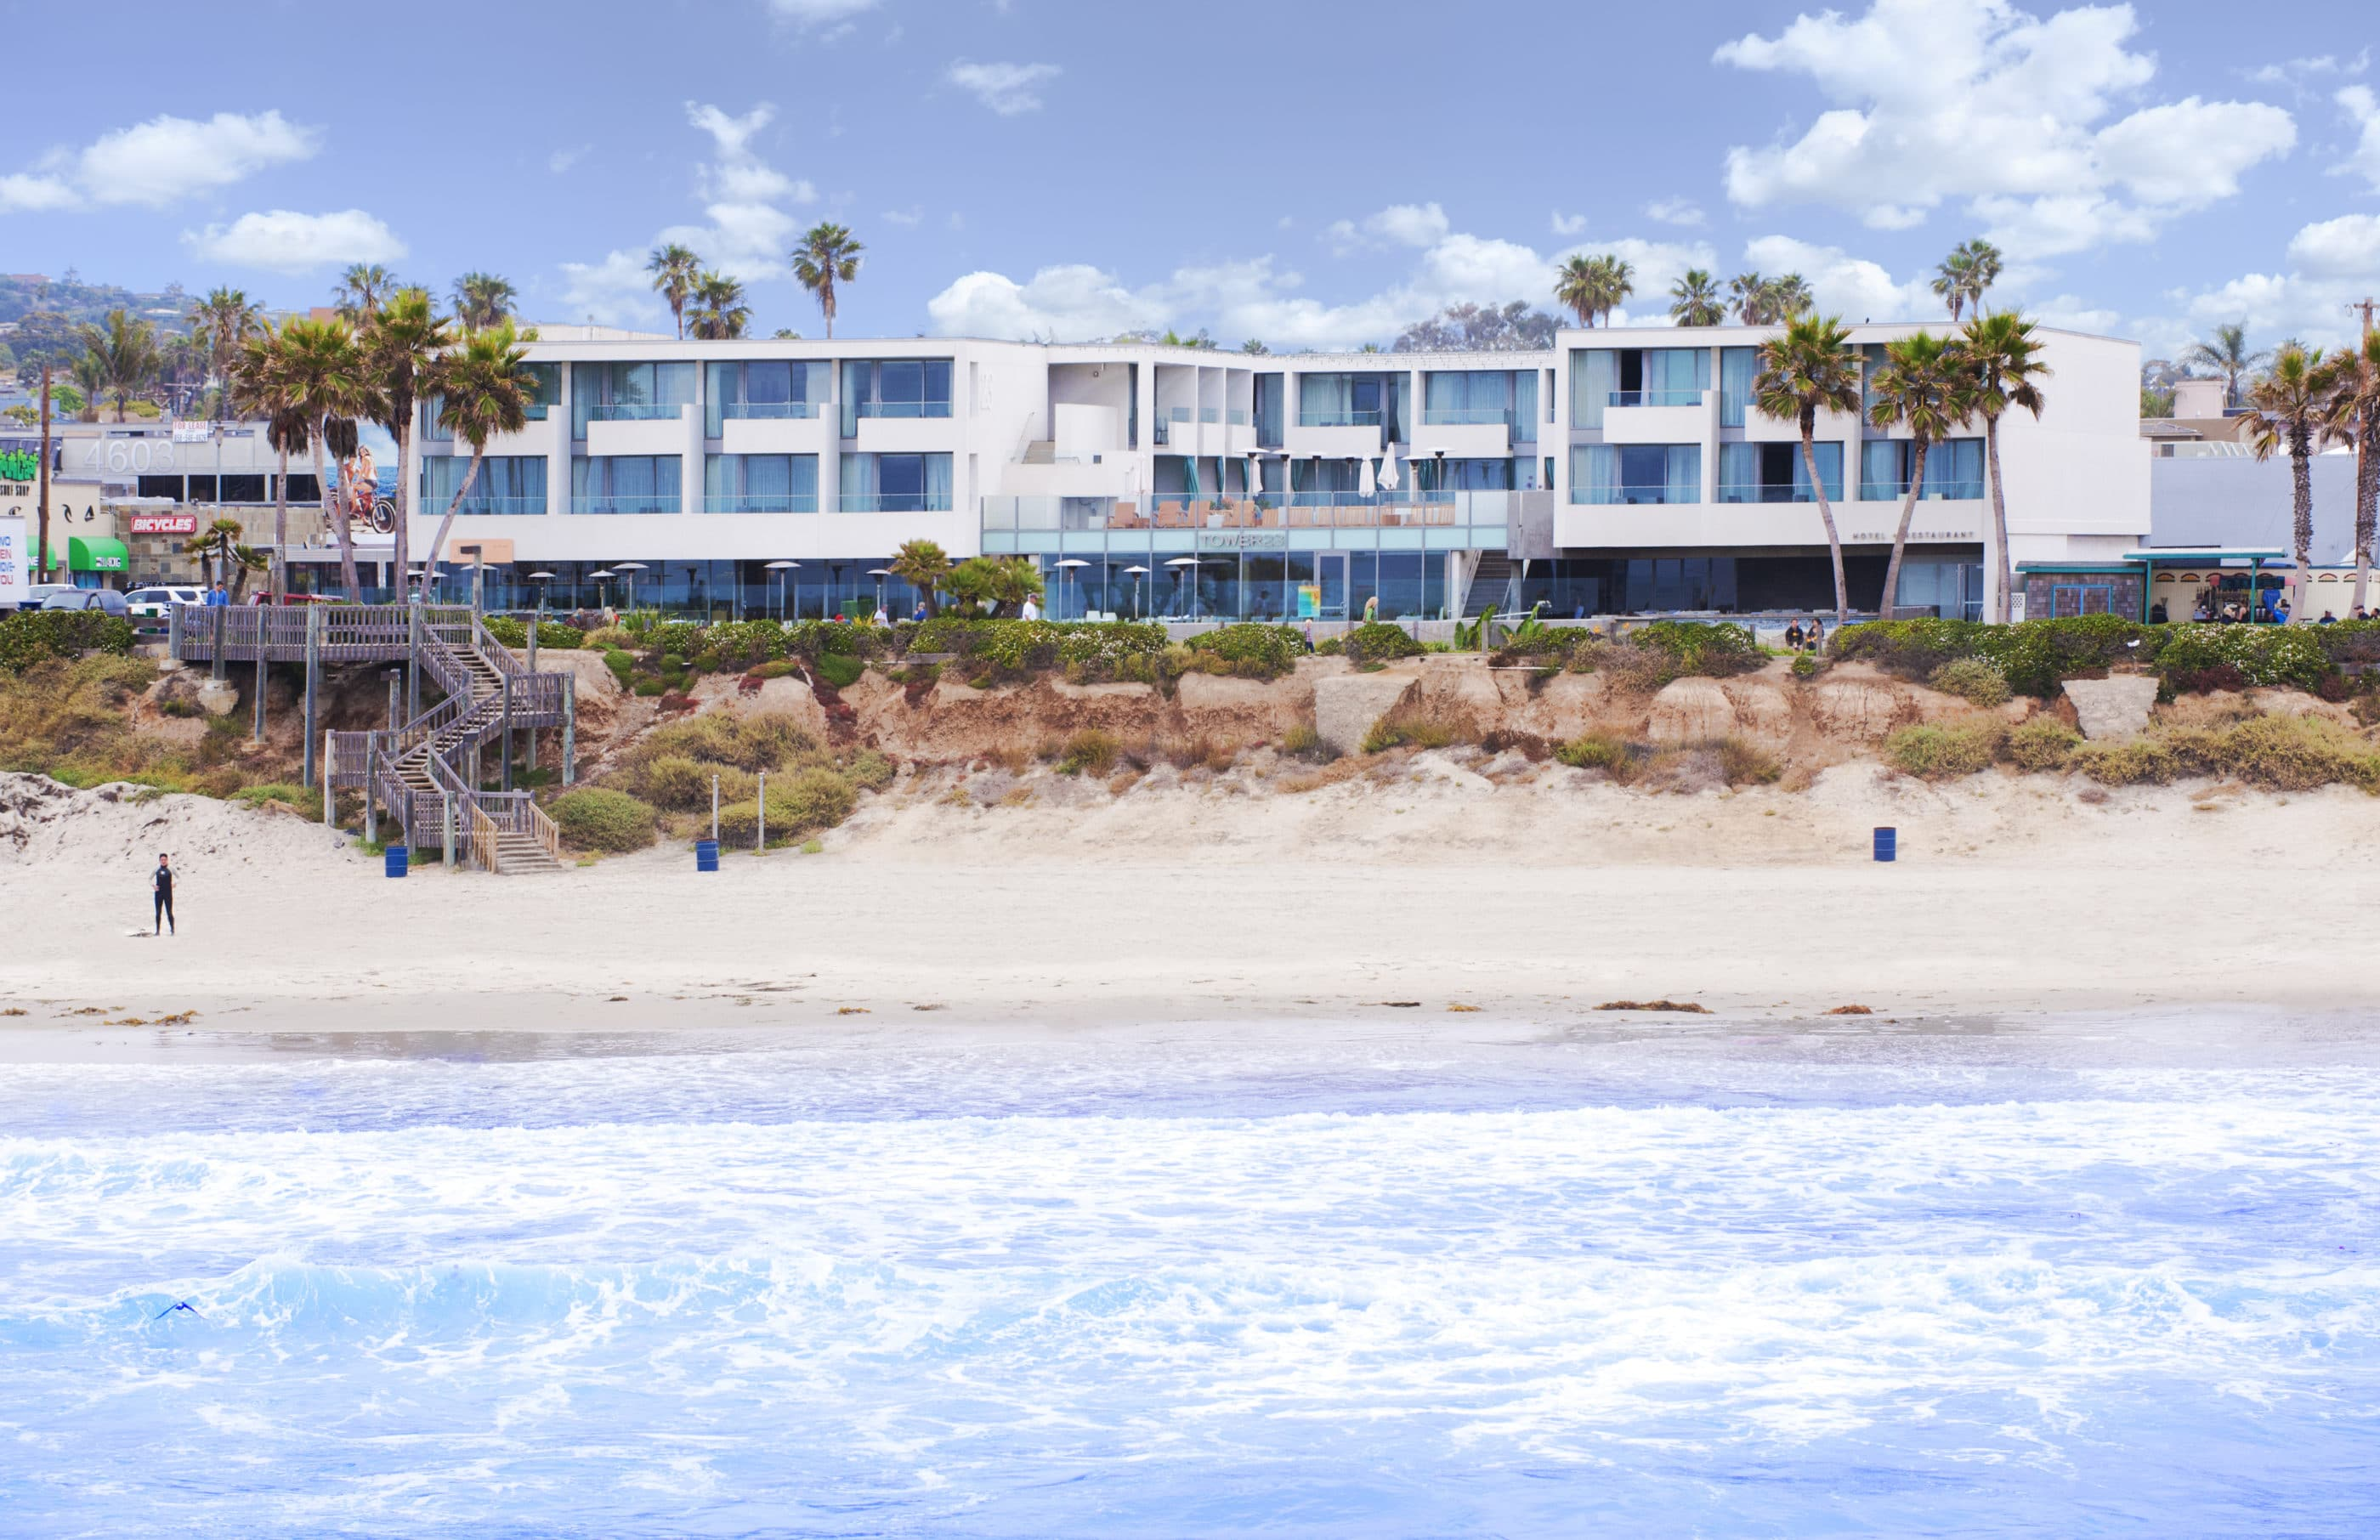 View from the ocean of the exterior of Tower23, a Pacific Beach boutique hotel.